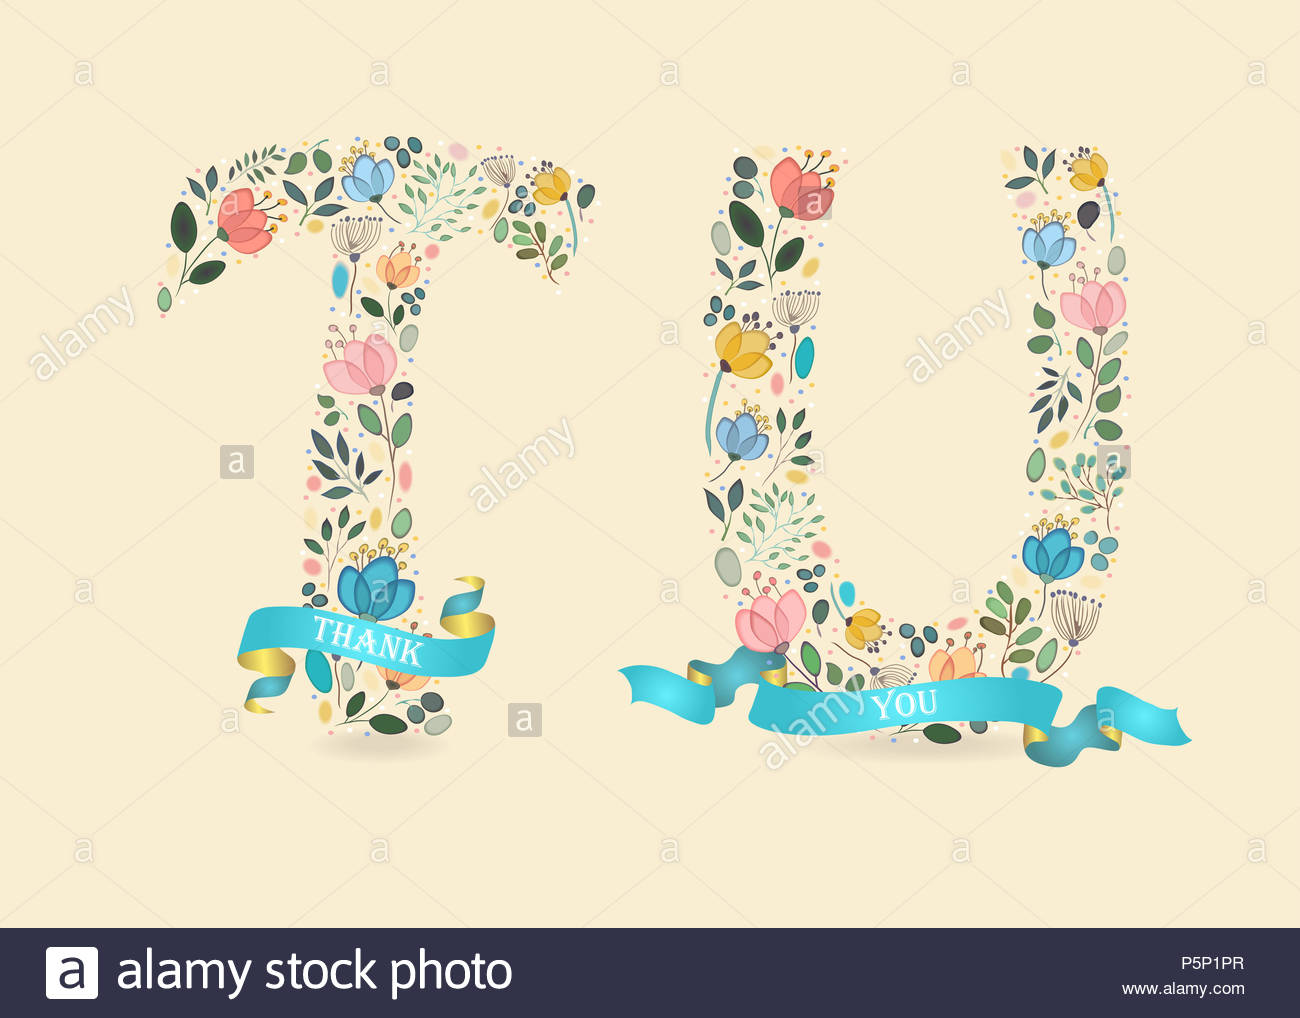 Thank You Floral Letters T And U Watercolor Graceful Flowers And